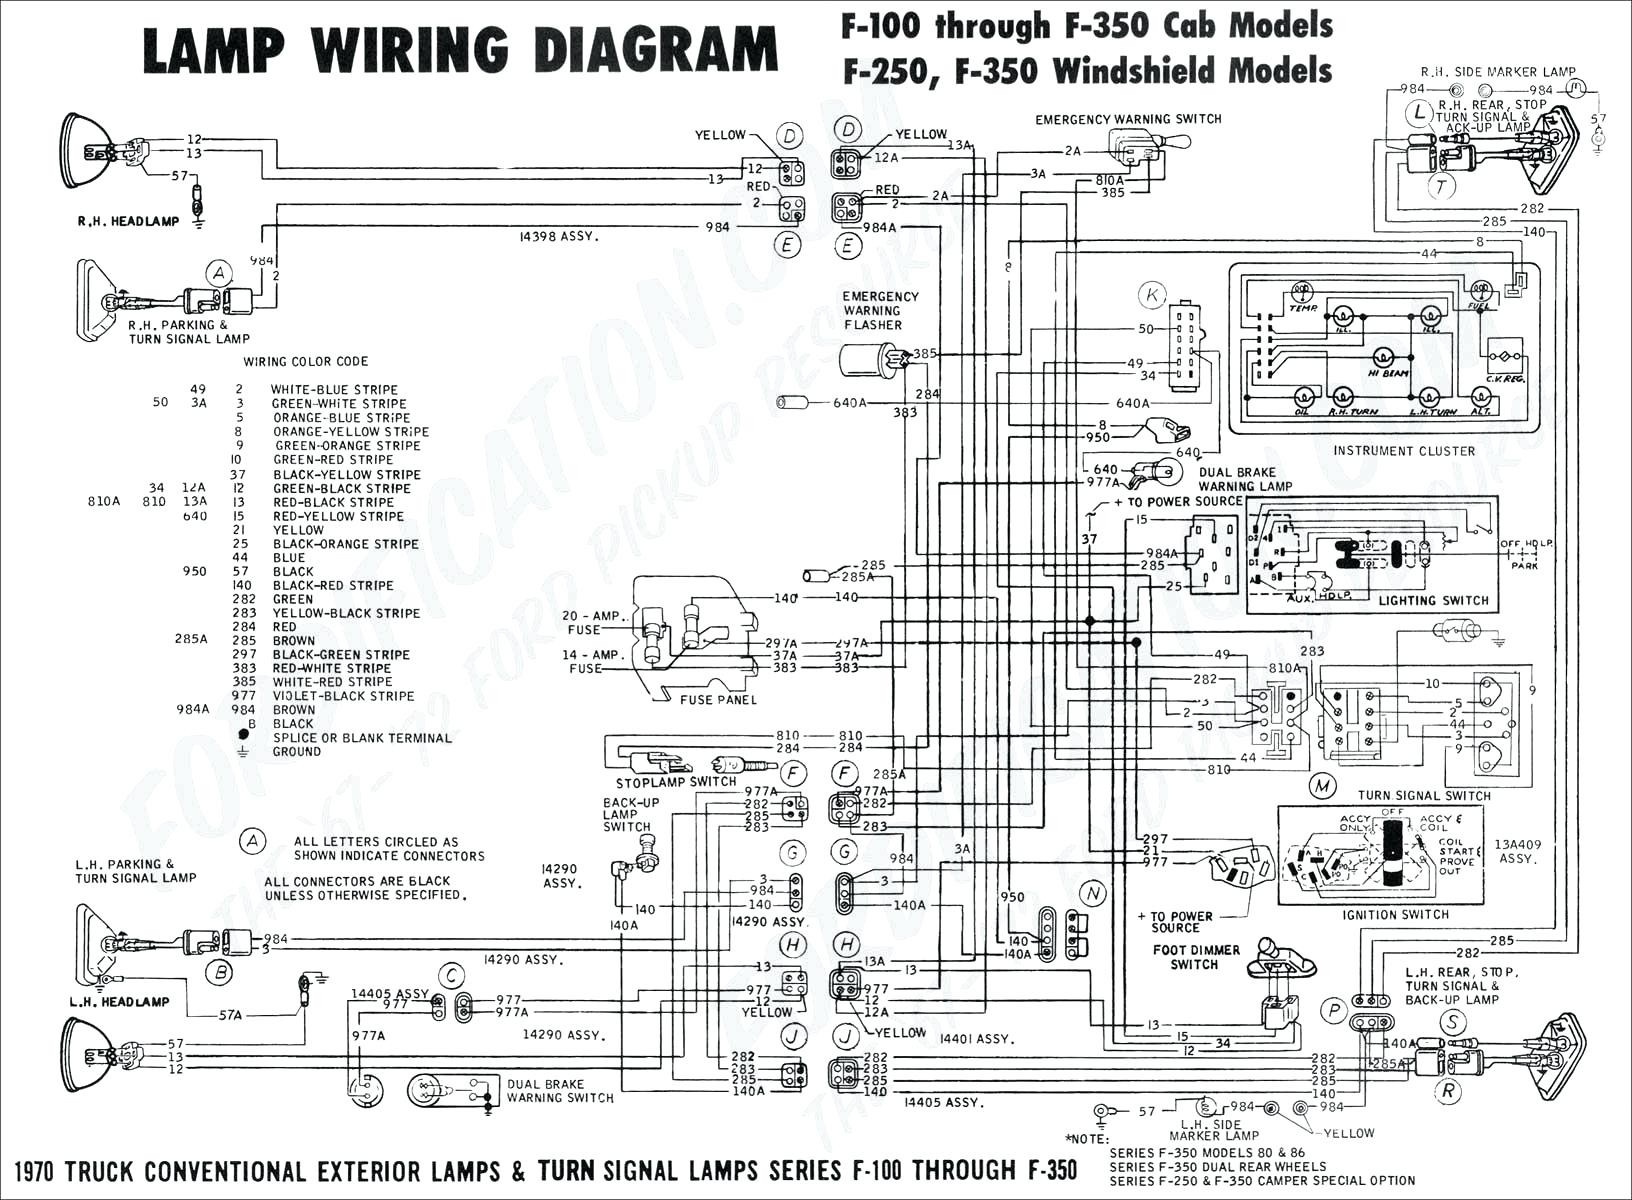 2003 Ford Econoline Van Fuse Diagram E150 Box E Panel Wiring Agram